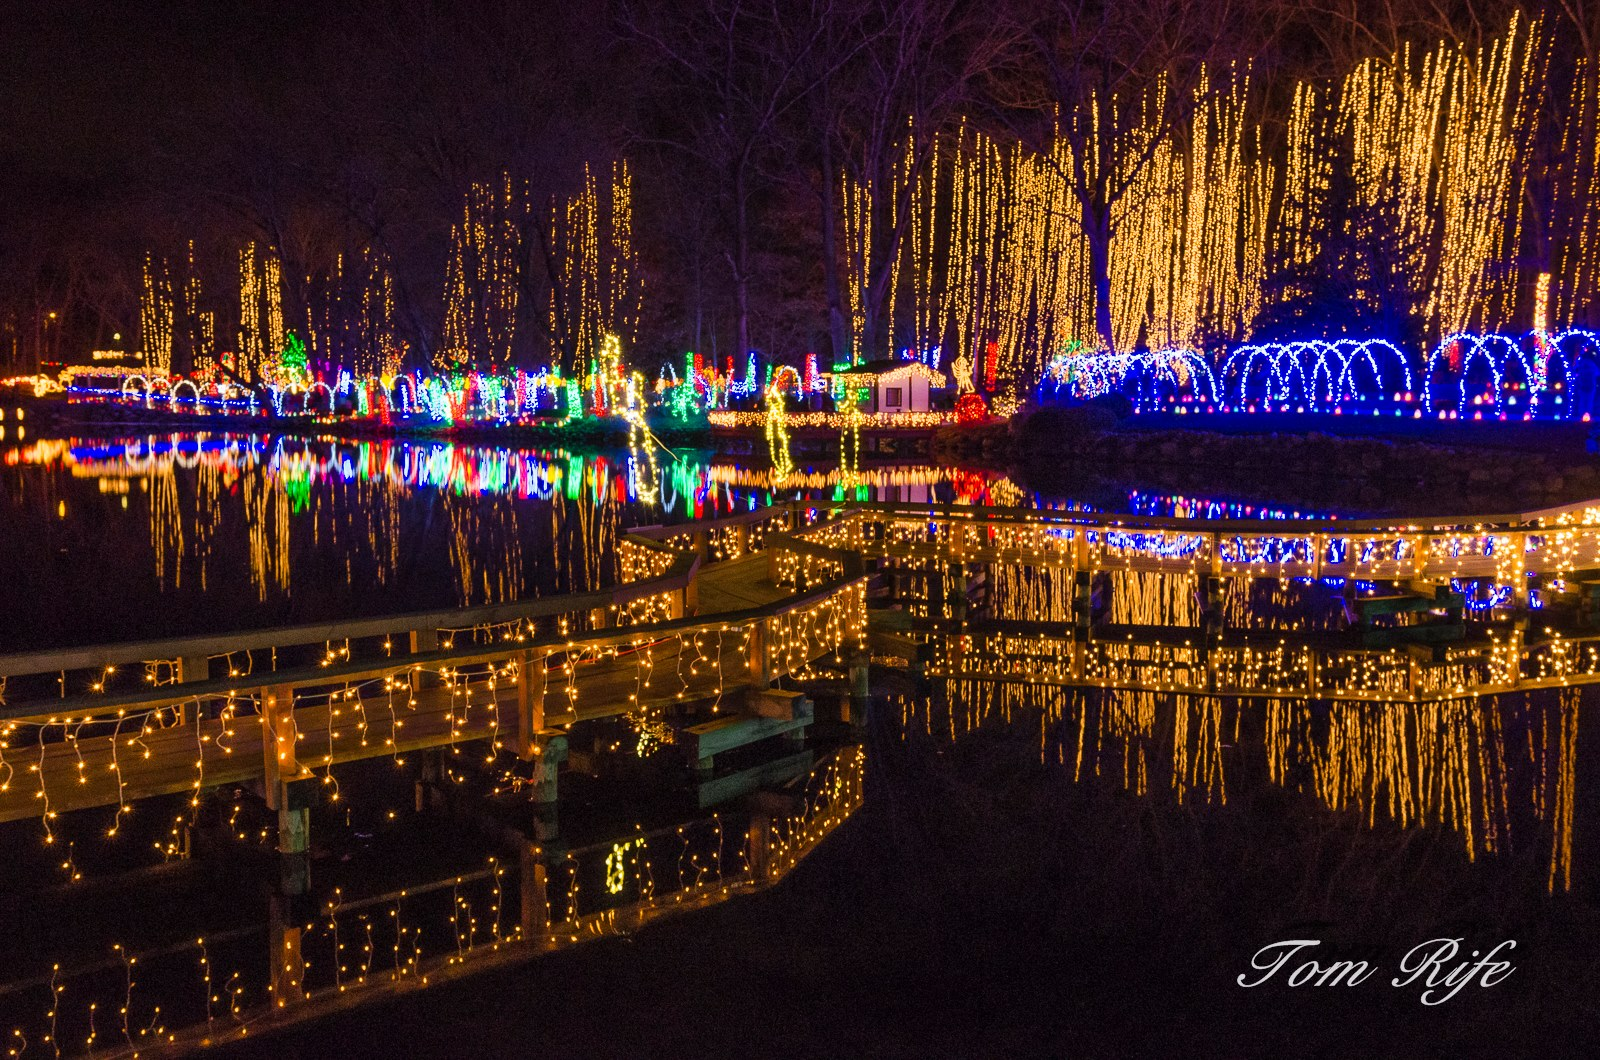 Botanical Garden Christmas Lights - Christmas Cards